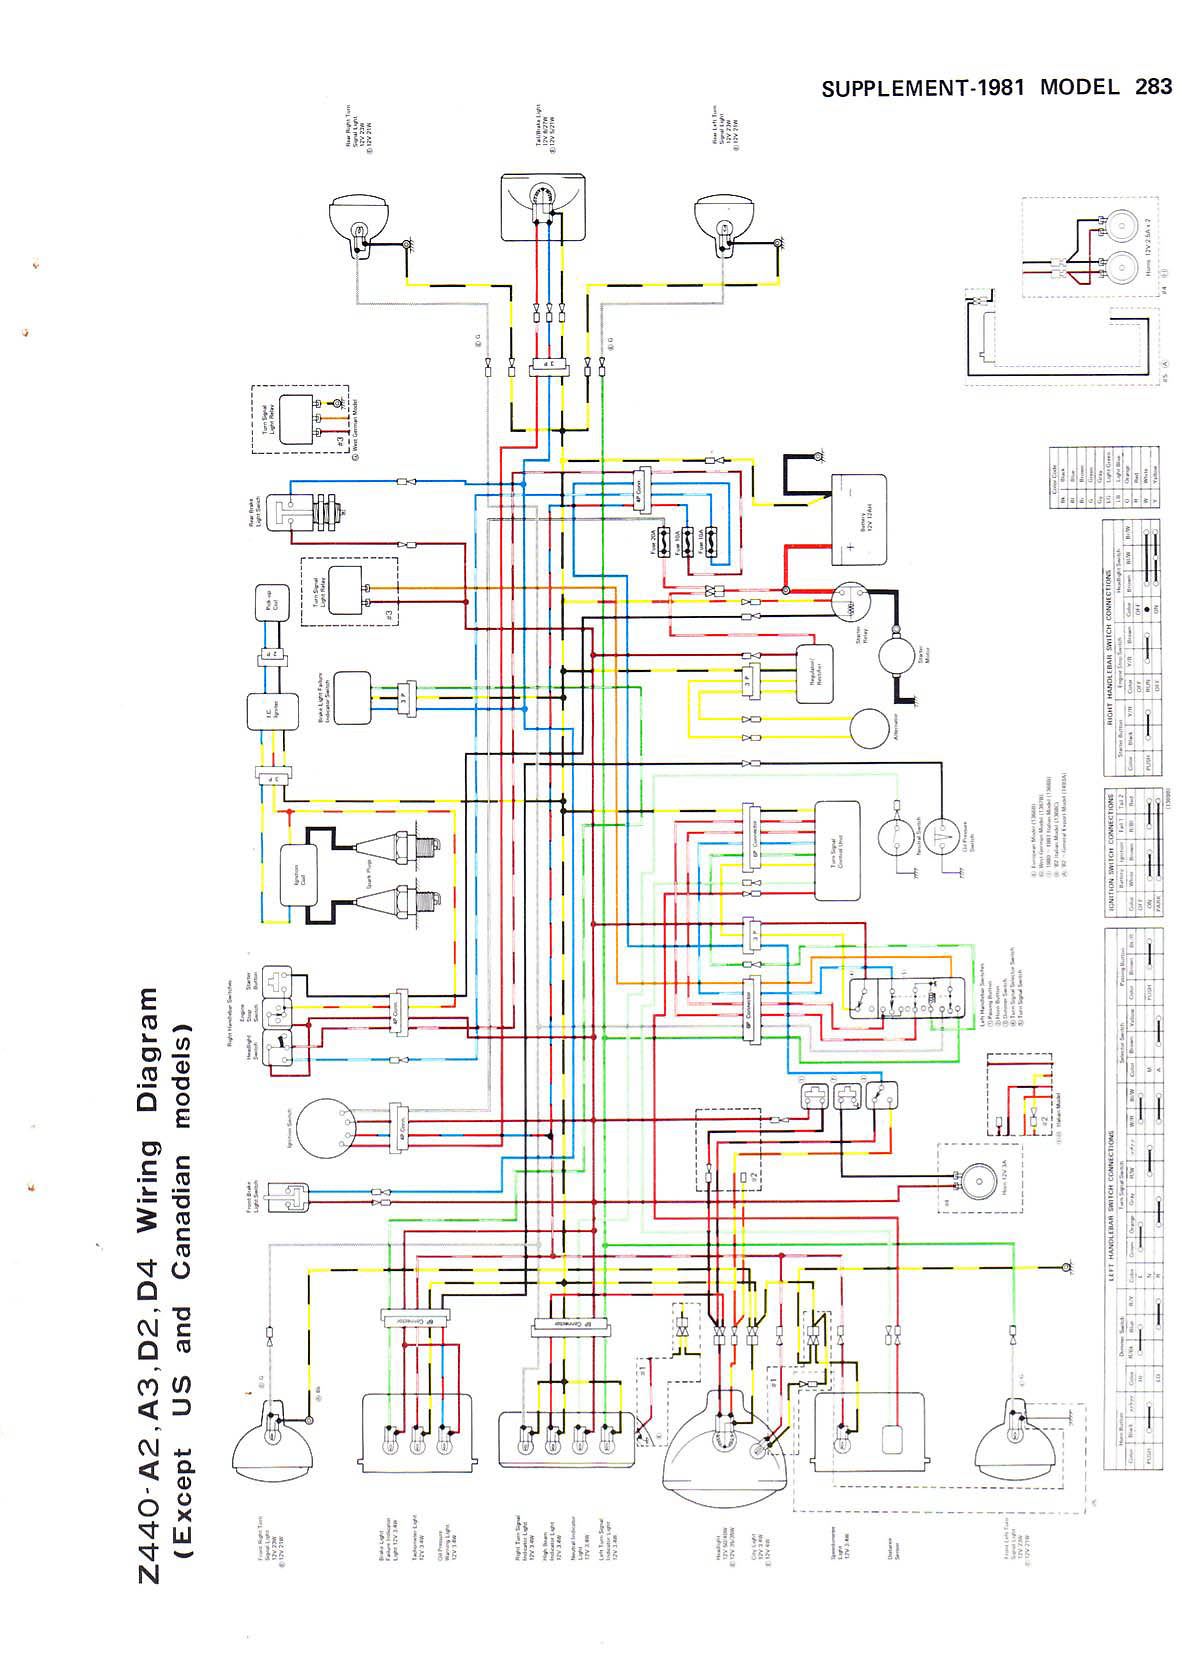 Kawasaki KZ 440 %2780 a %2782 Service Manual_Page_280 index of kz440 wiring diagrams kz440 wiring diagram at creativeand.co